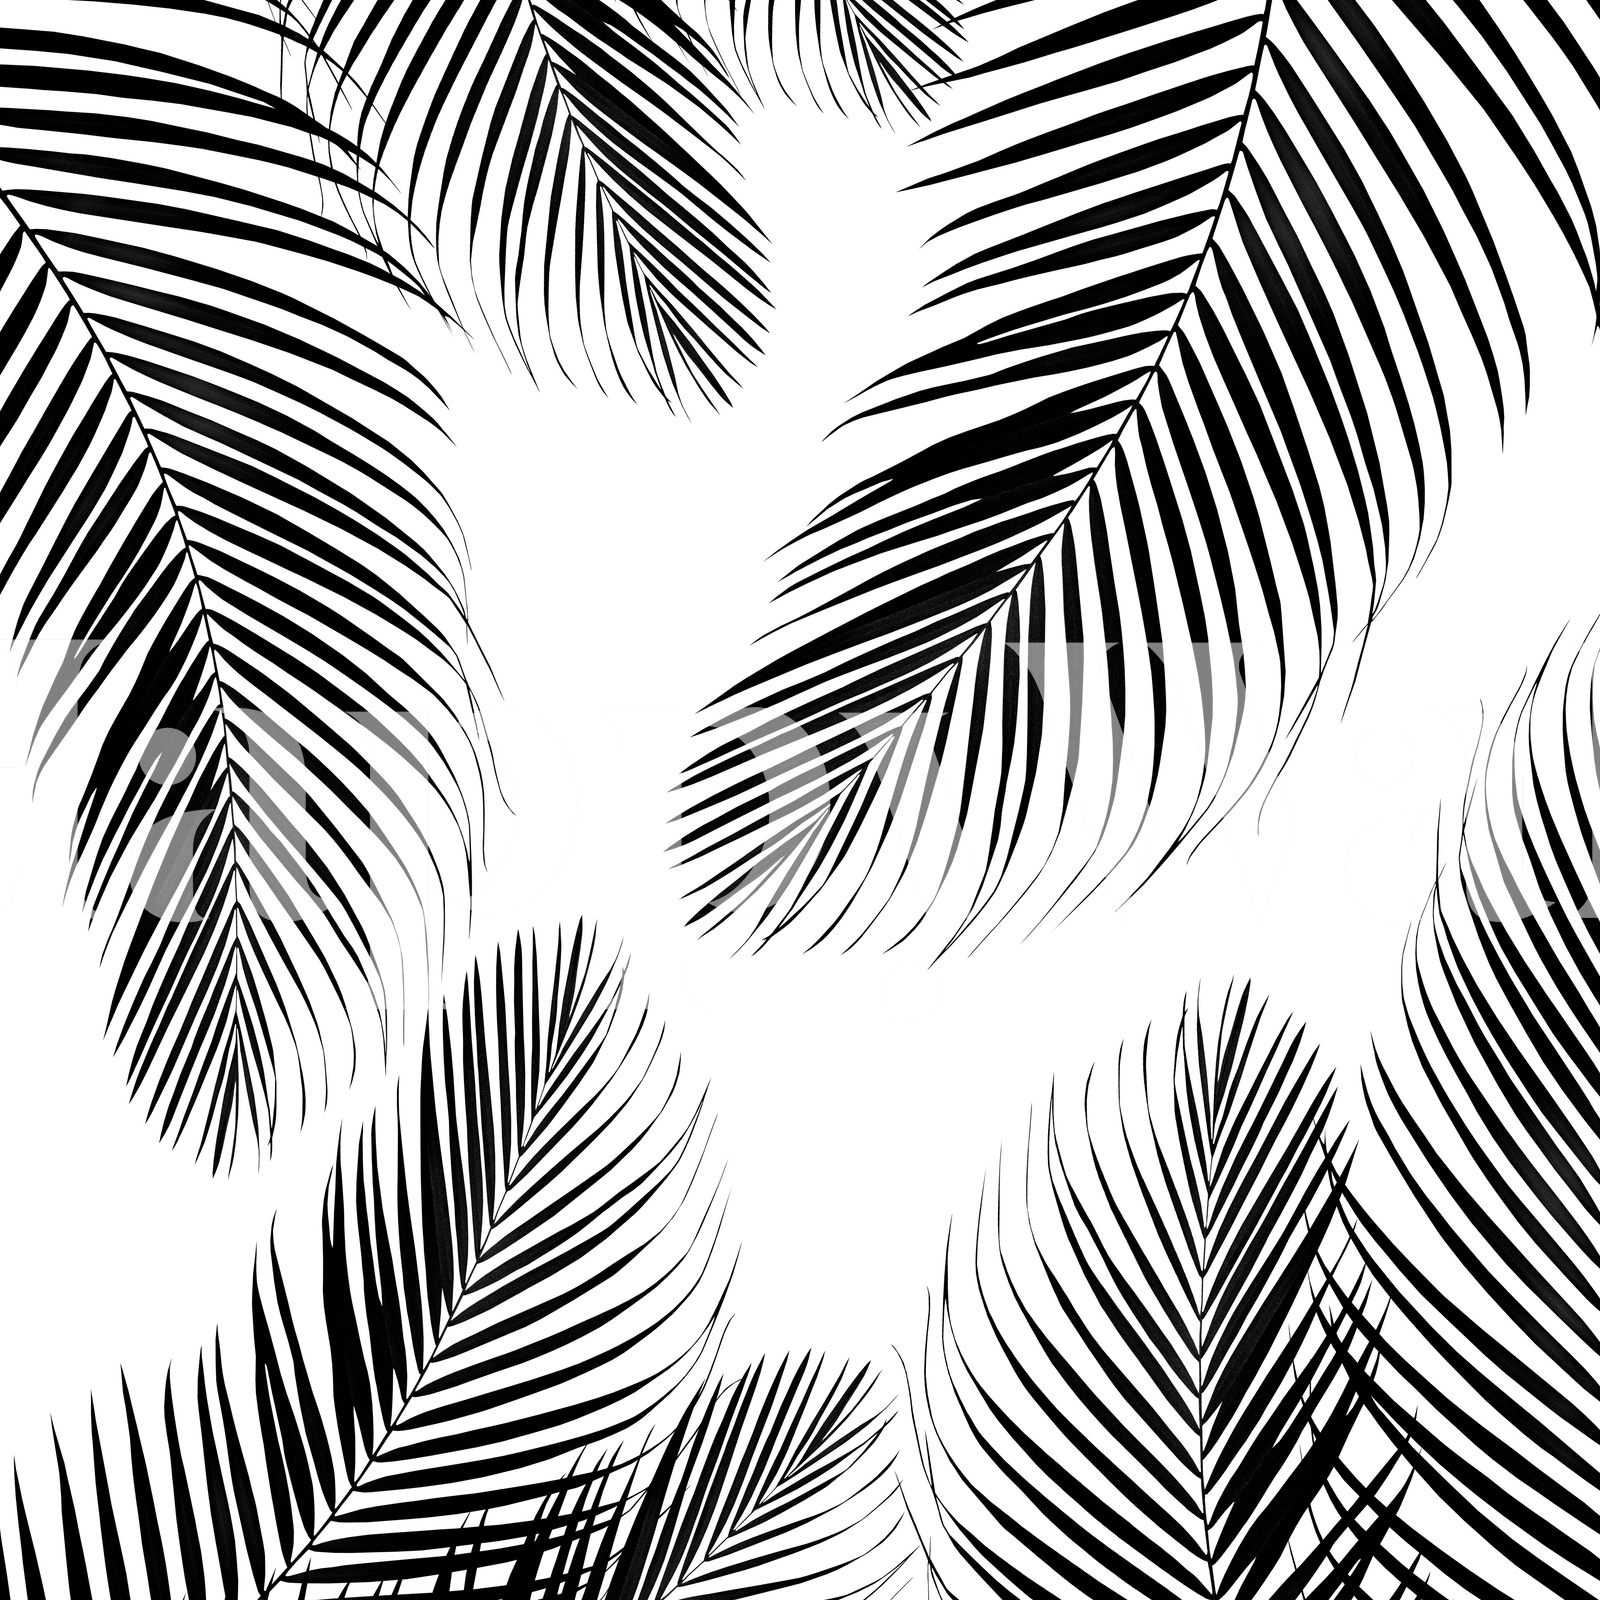 Buy palm leaves black white 2 wall mural free us shipping at happywall com